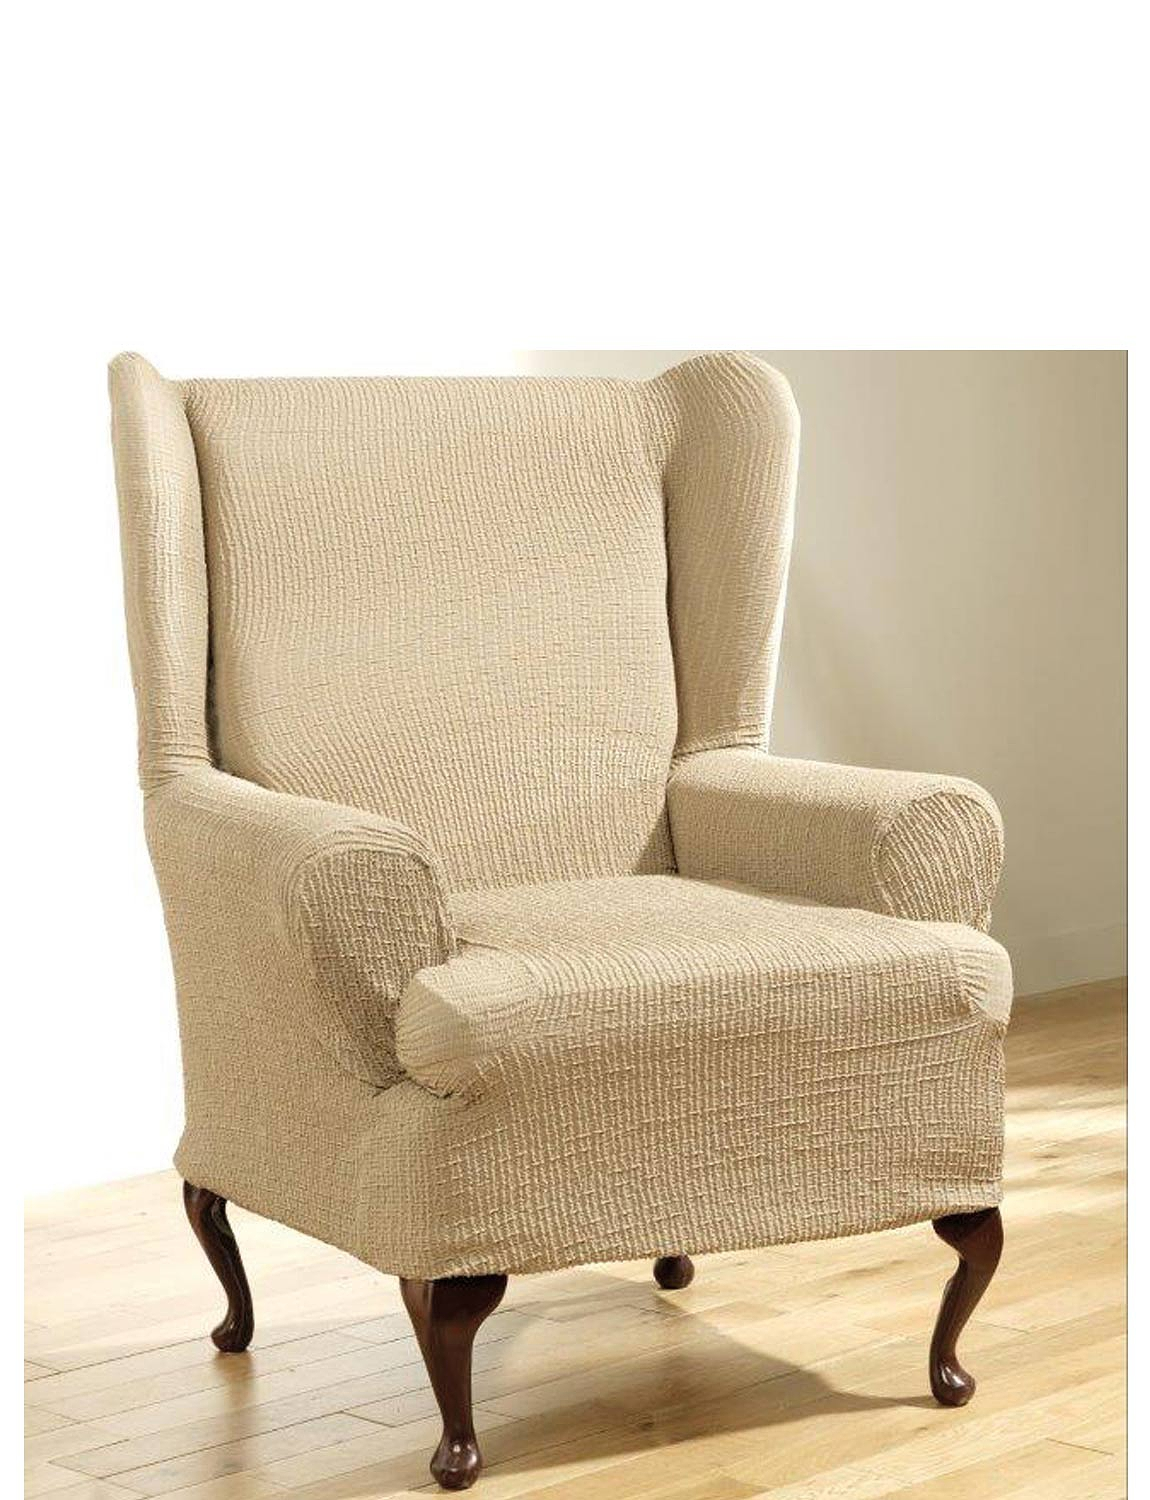 Admirable 2 Way Easy Fit Furniture Covers Wing Chair Lamtechconsult Wood Chair Design Ideas Lamtechconsultcom